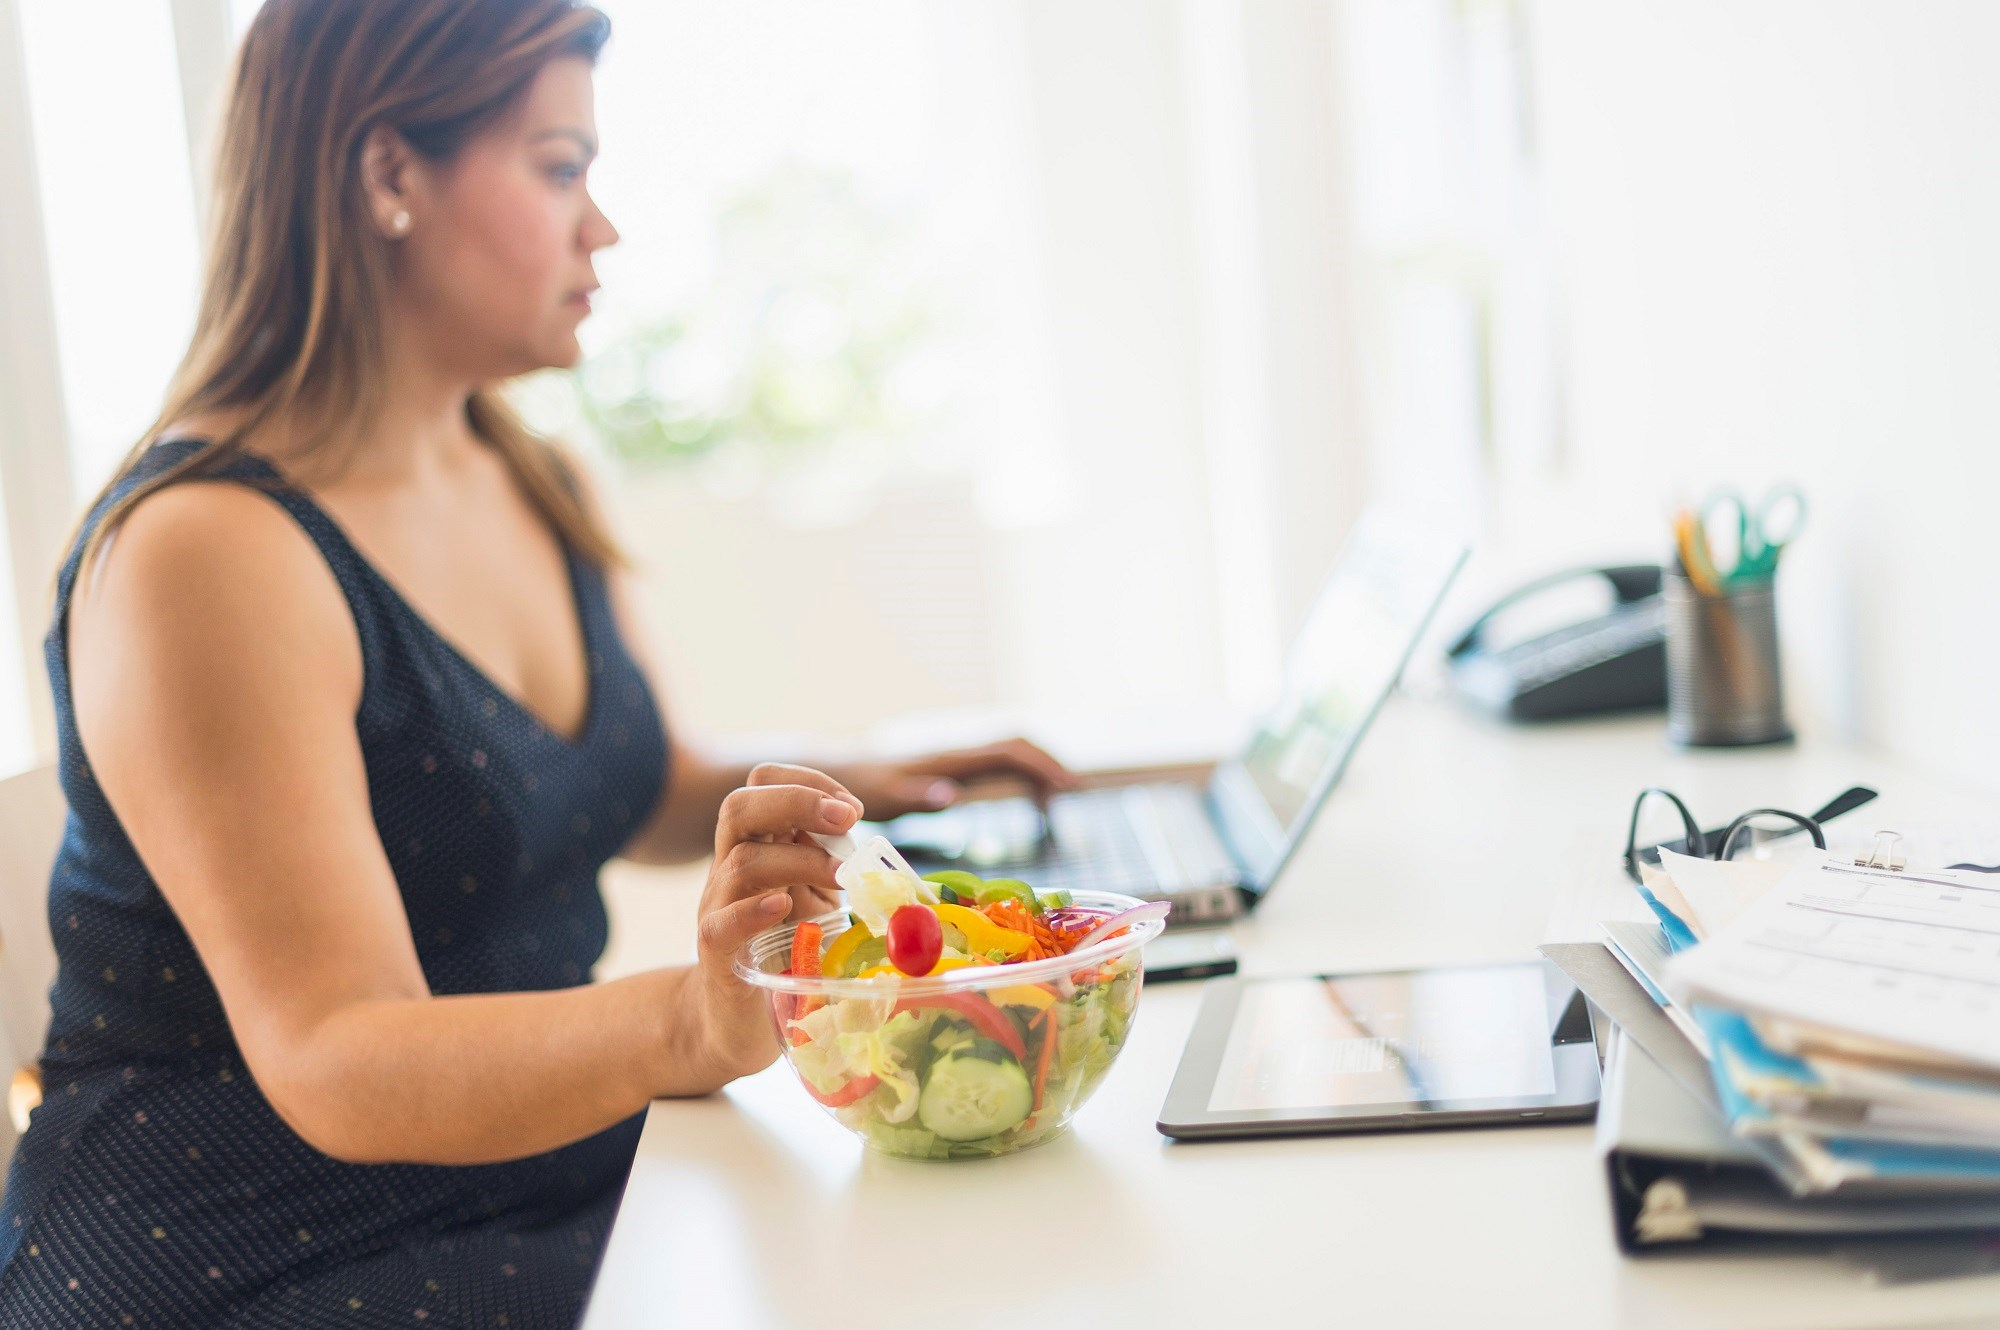 Dietary quality can affect energy expenditure independent of body weight, a phenomenon that could be key to obesity treatment.